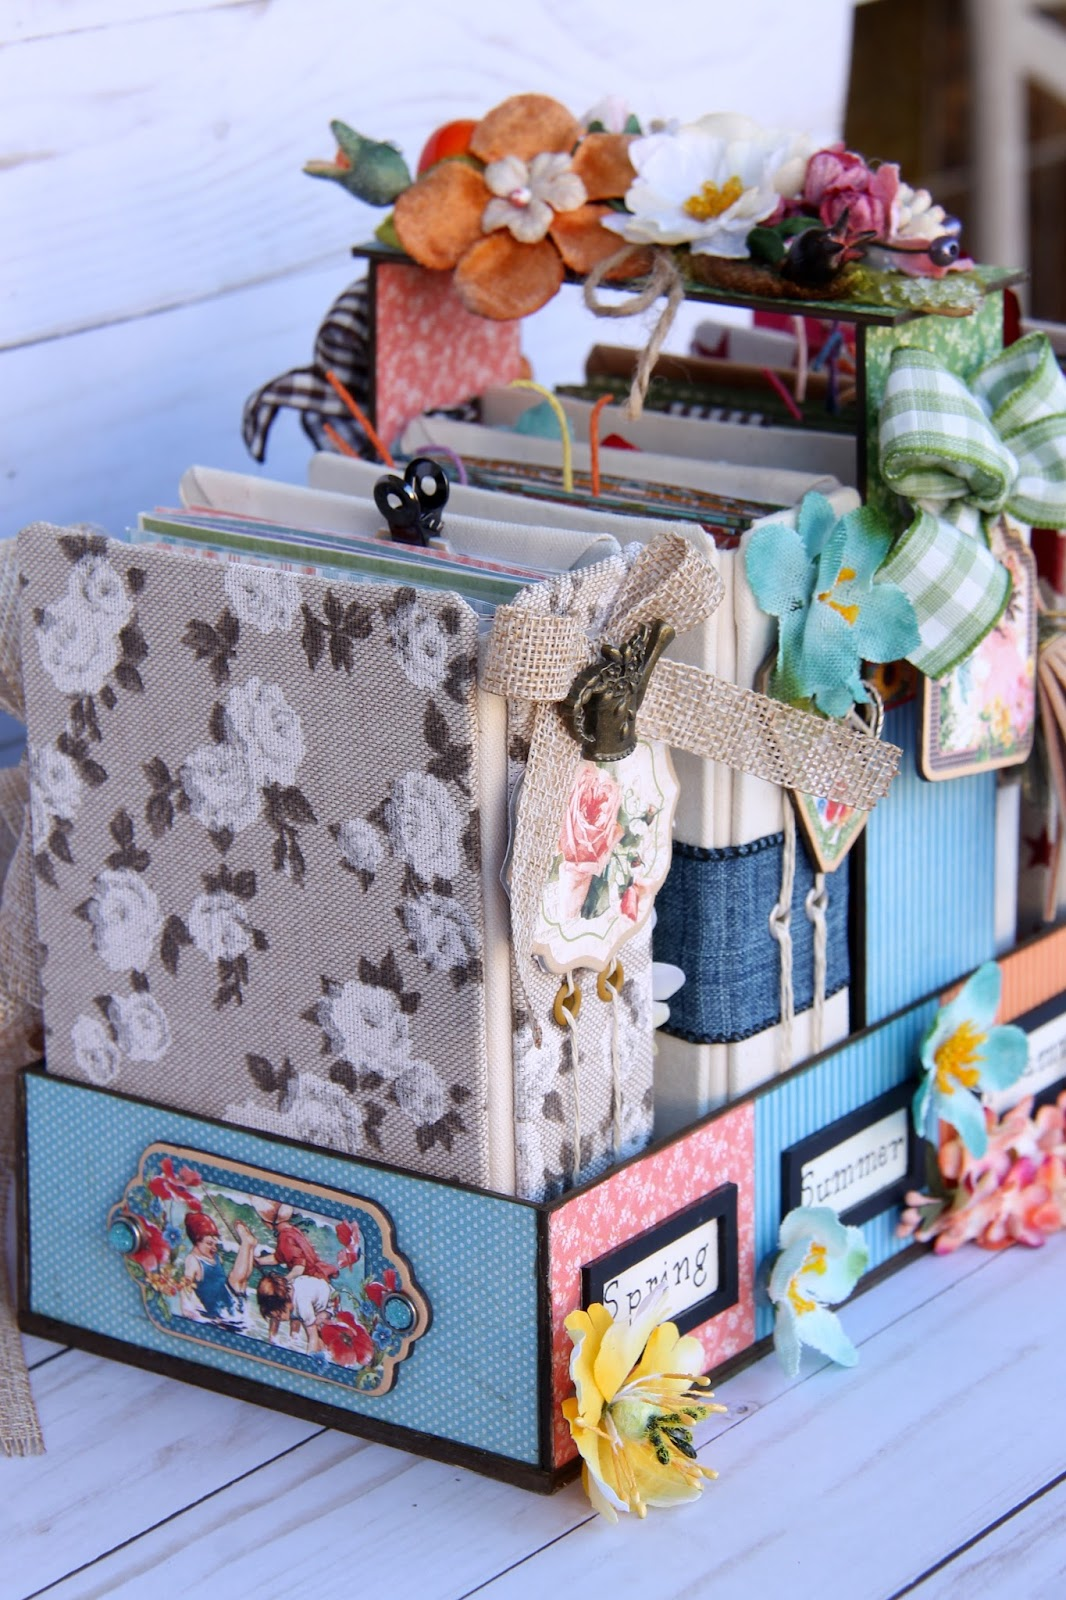 Four seasons Diary Stand G45 Collections Tutorial by Marina Blaukitchen Product by Graphic 45 photo 8.jpg